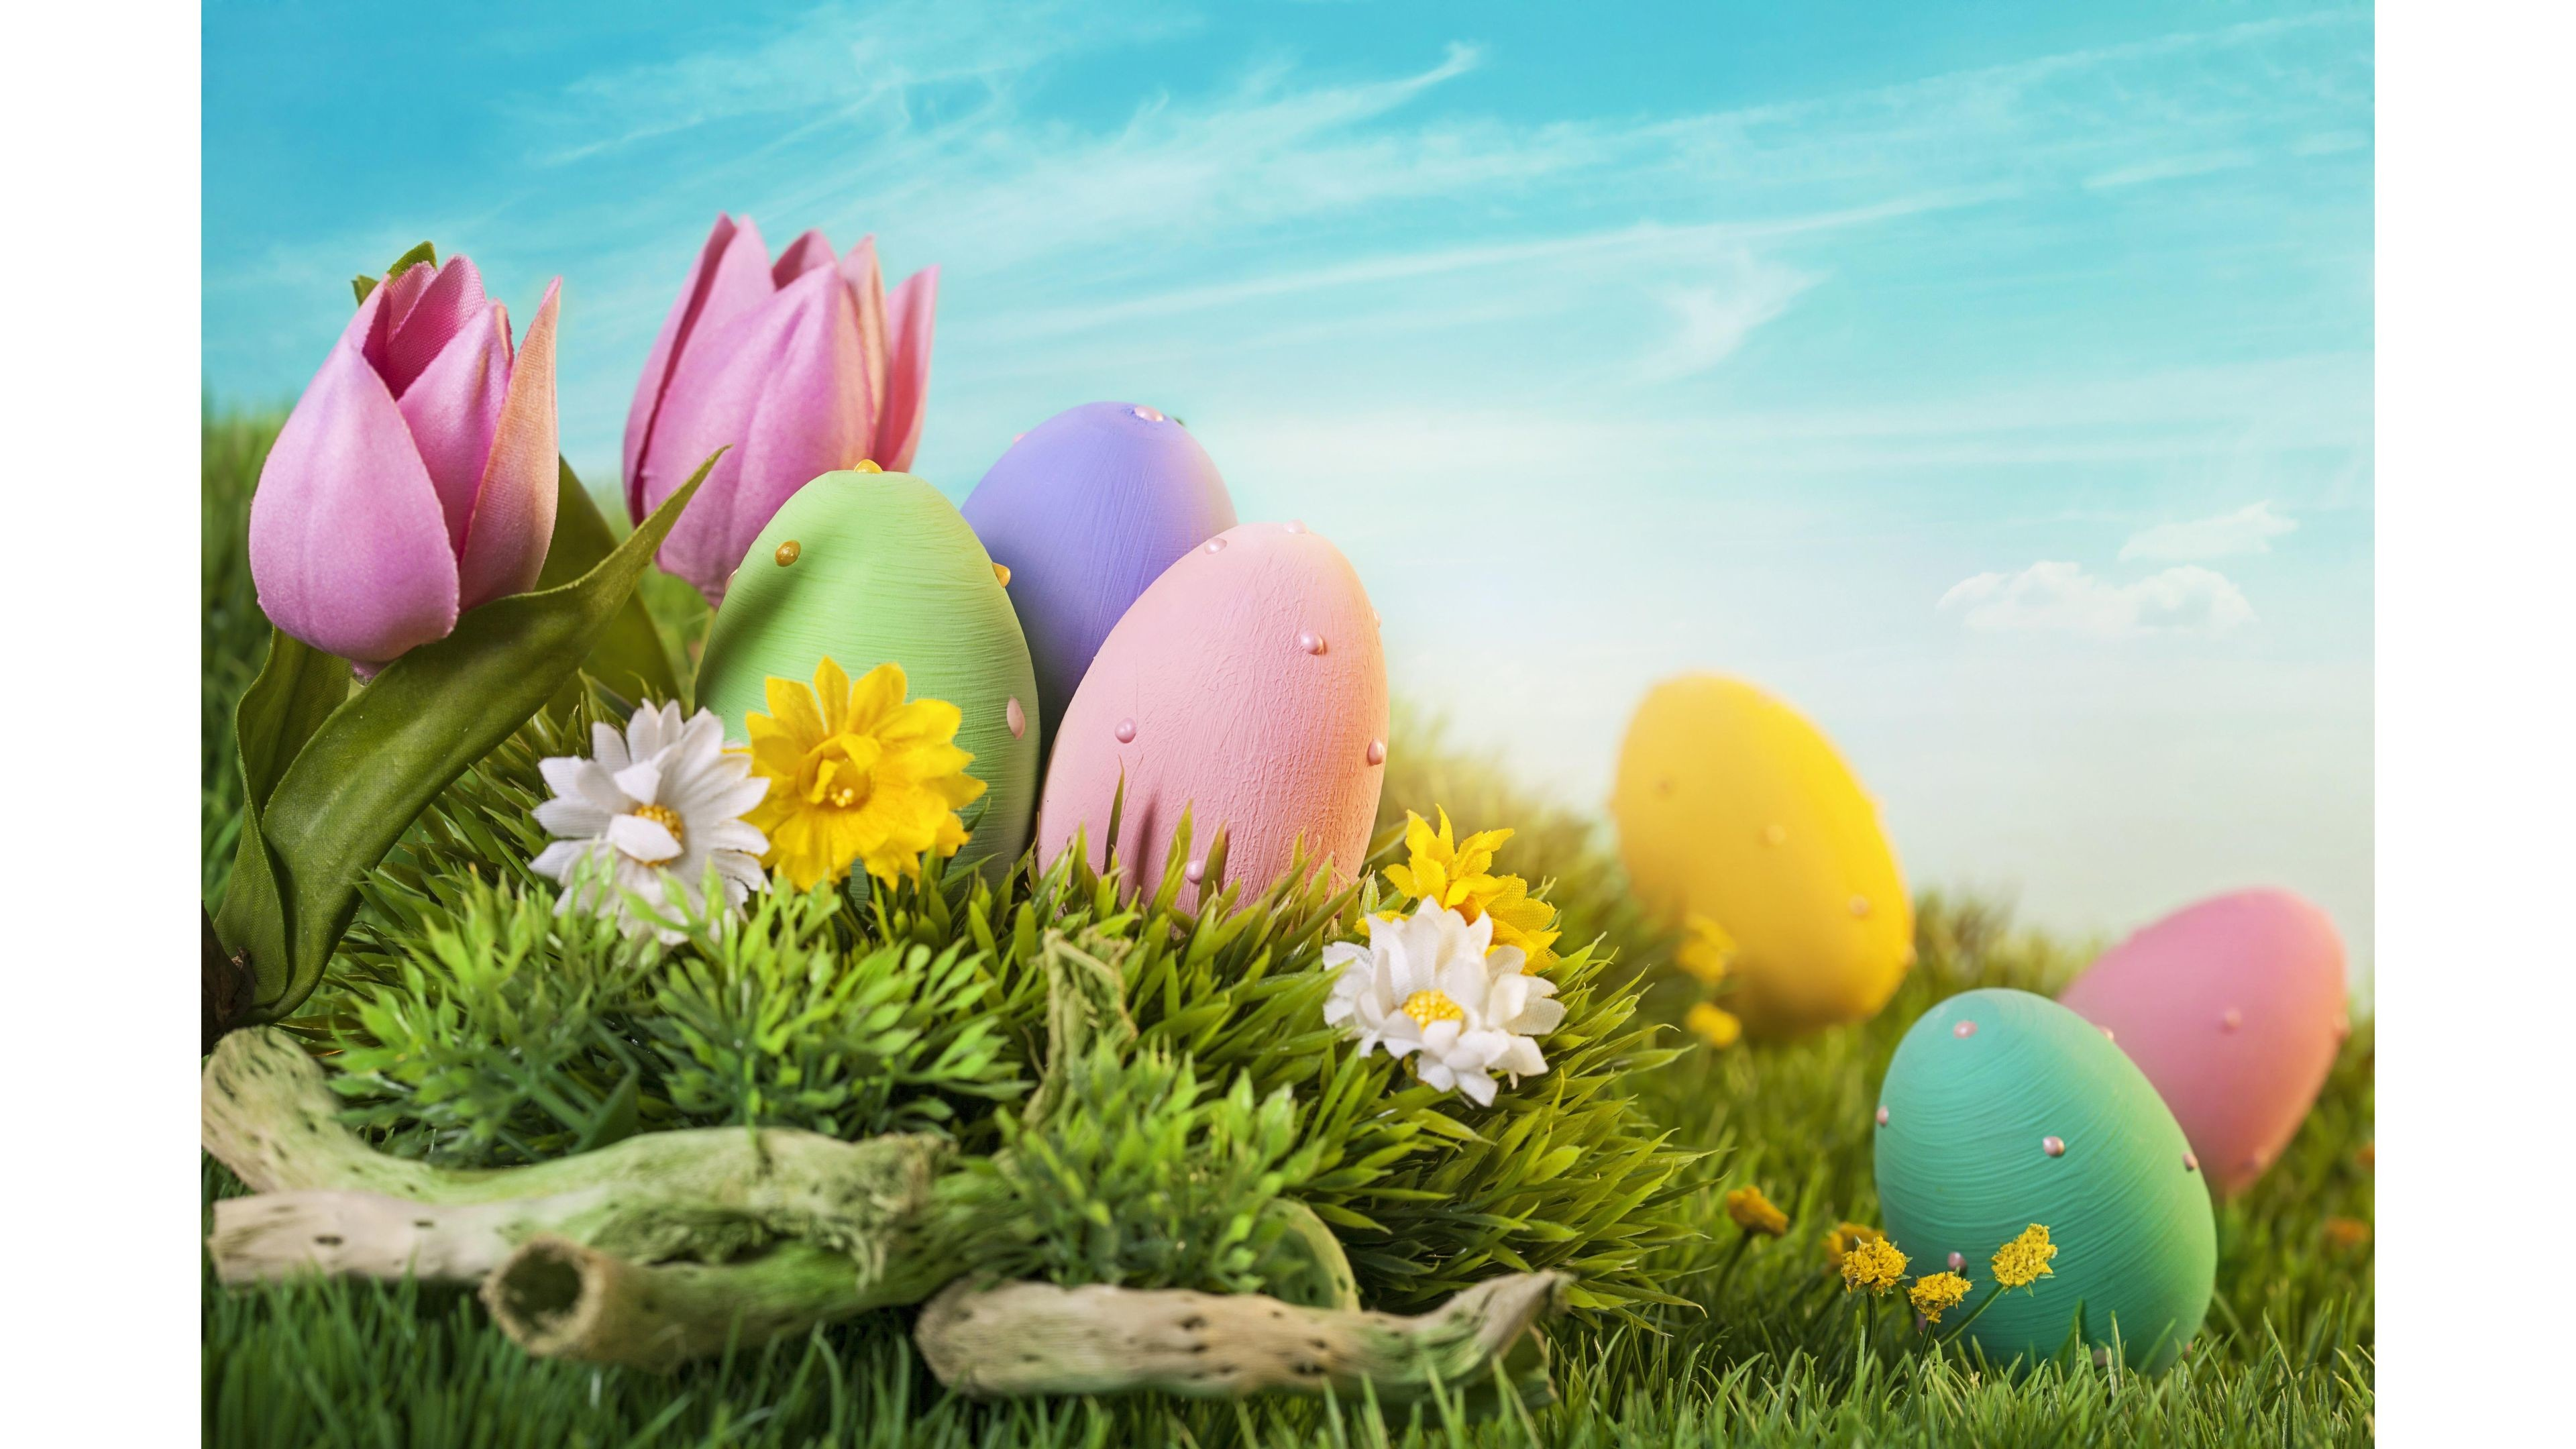 3840x2160 Pastel Colored Eggs Happy Easter 4K Wallpaper